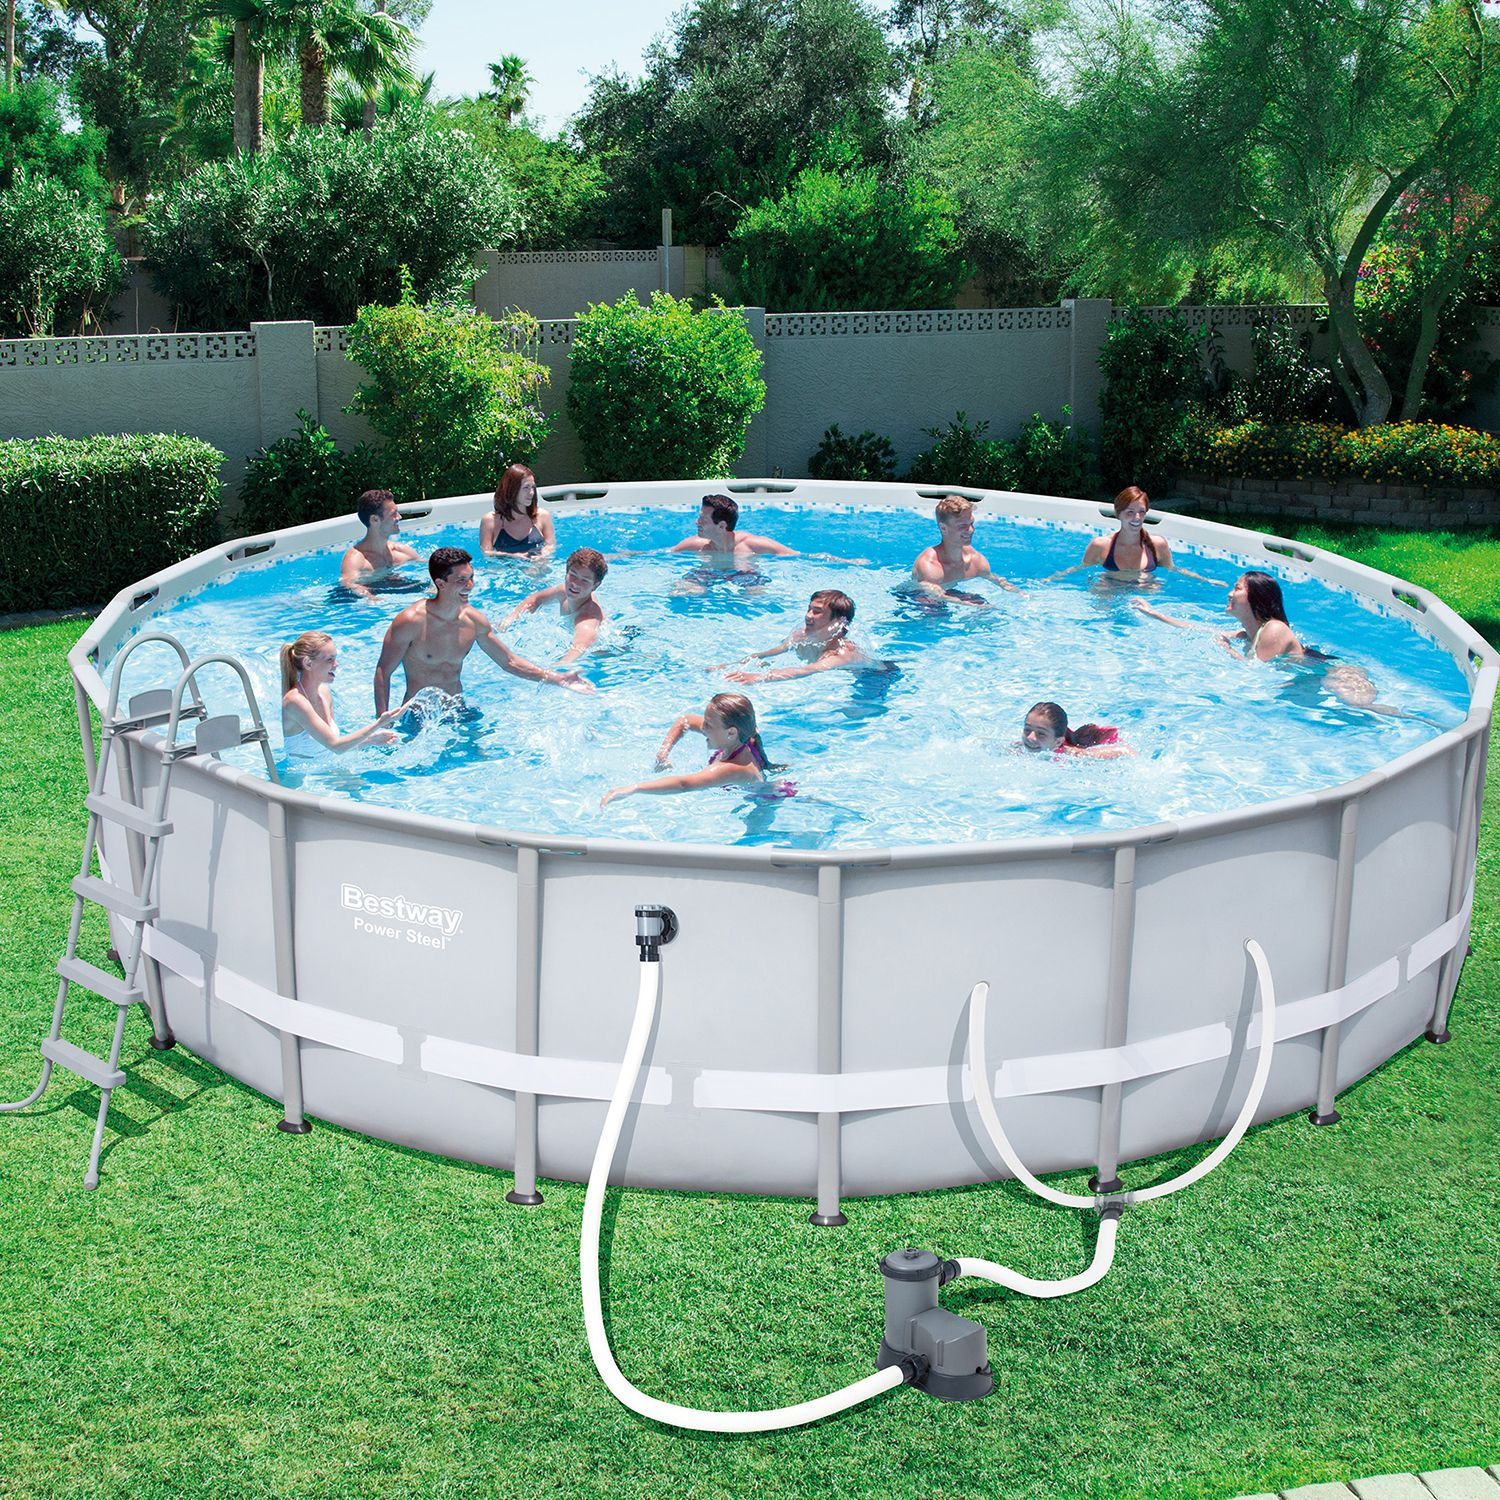 Bestway Steel Pro 18-Foot x 48-Inch Frame Pool Set | Pinterest